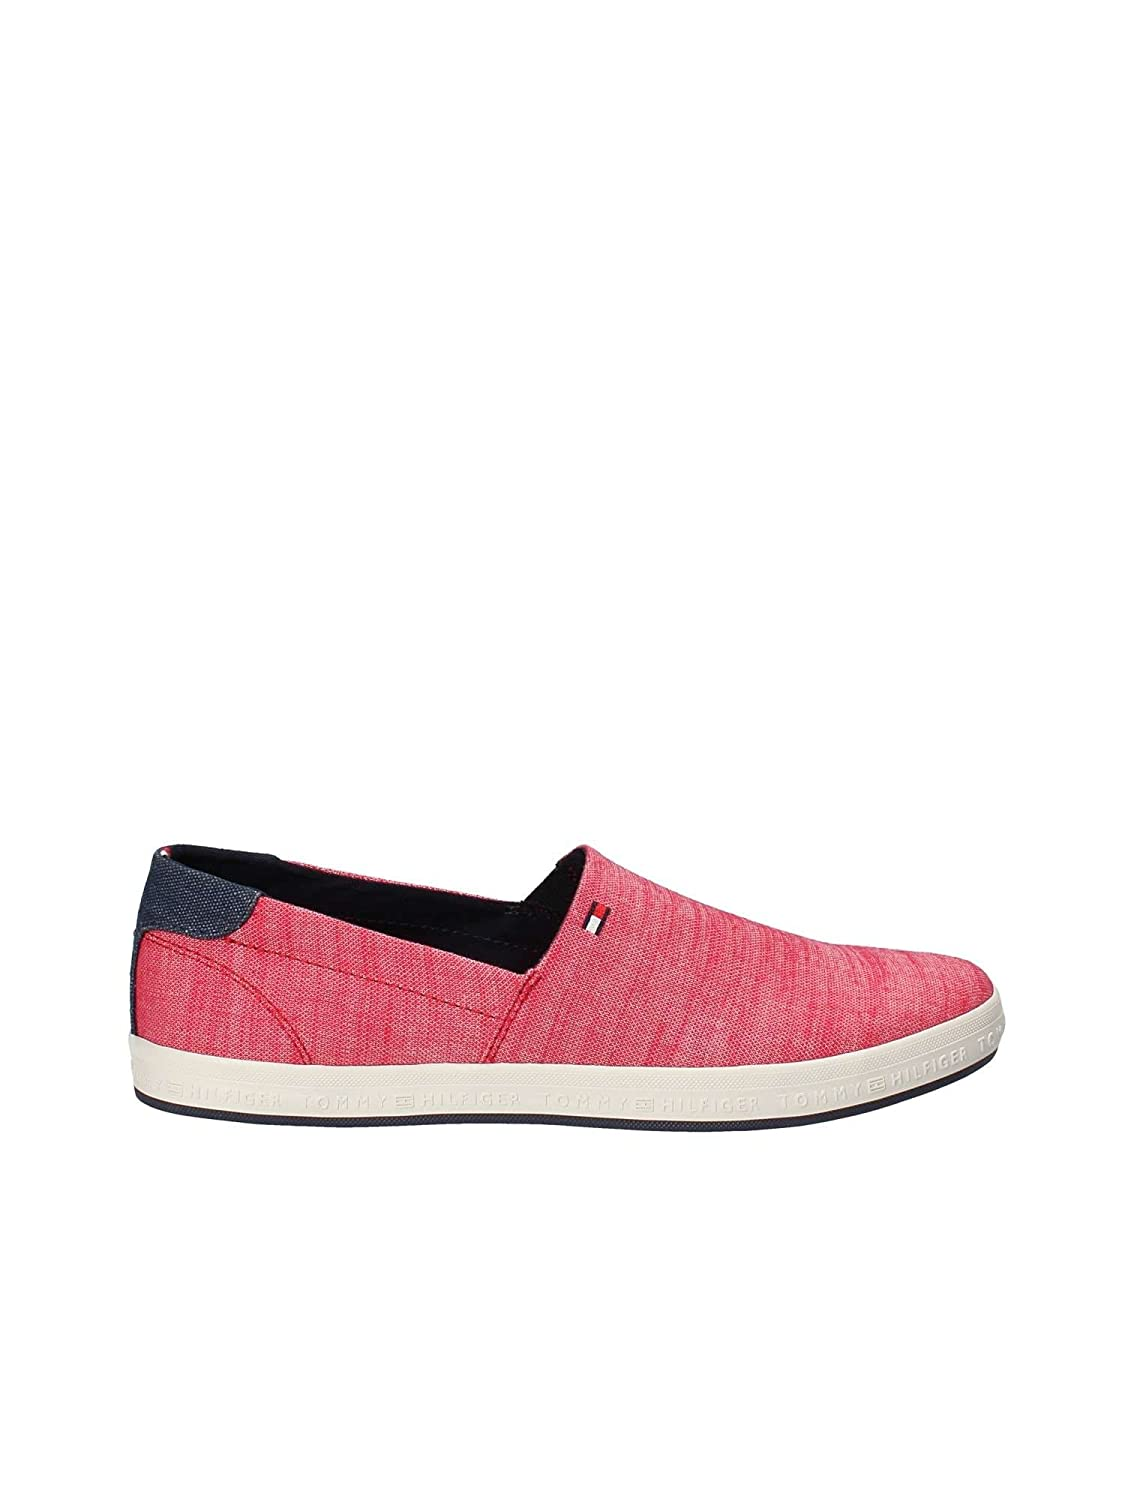 Tommy Hilfiger Zapatillas Zapatillas Slip on Denim 41 EU|Rojo